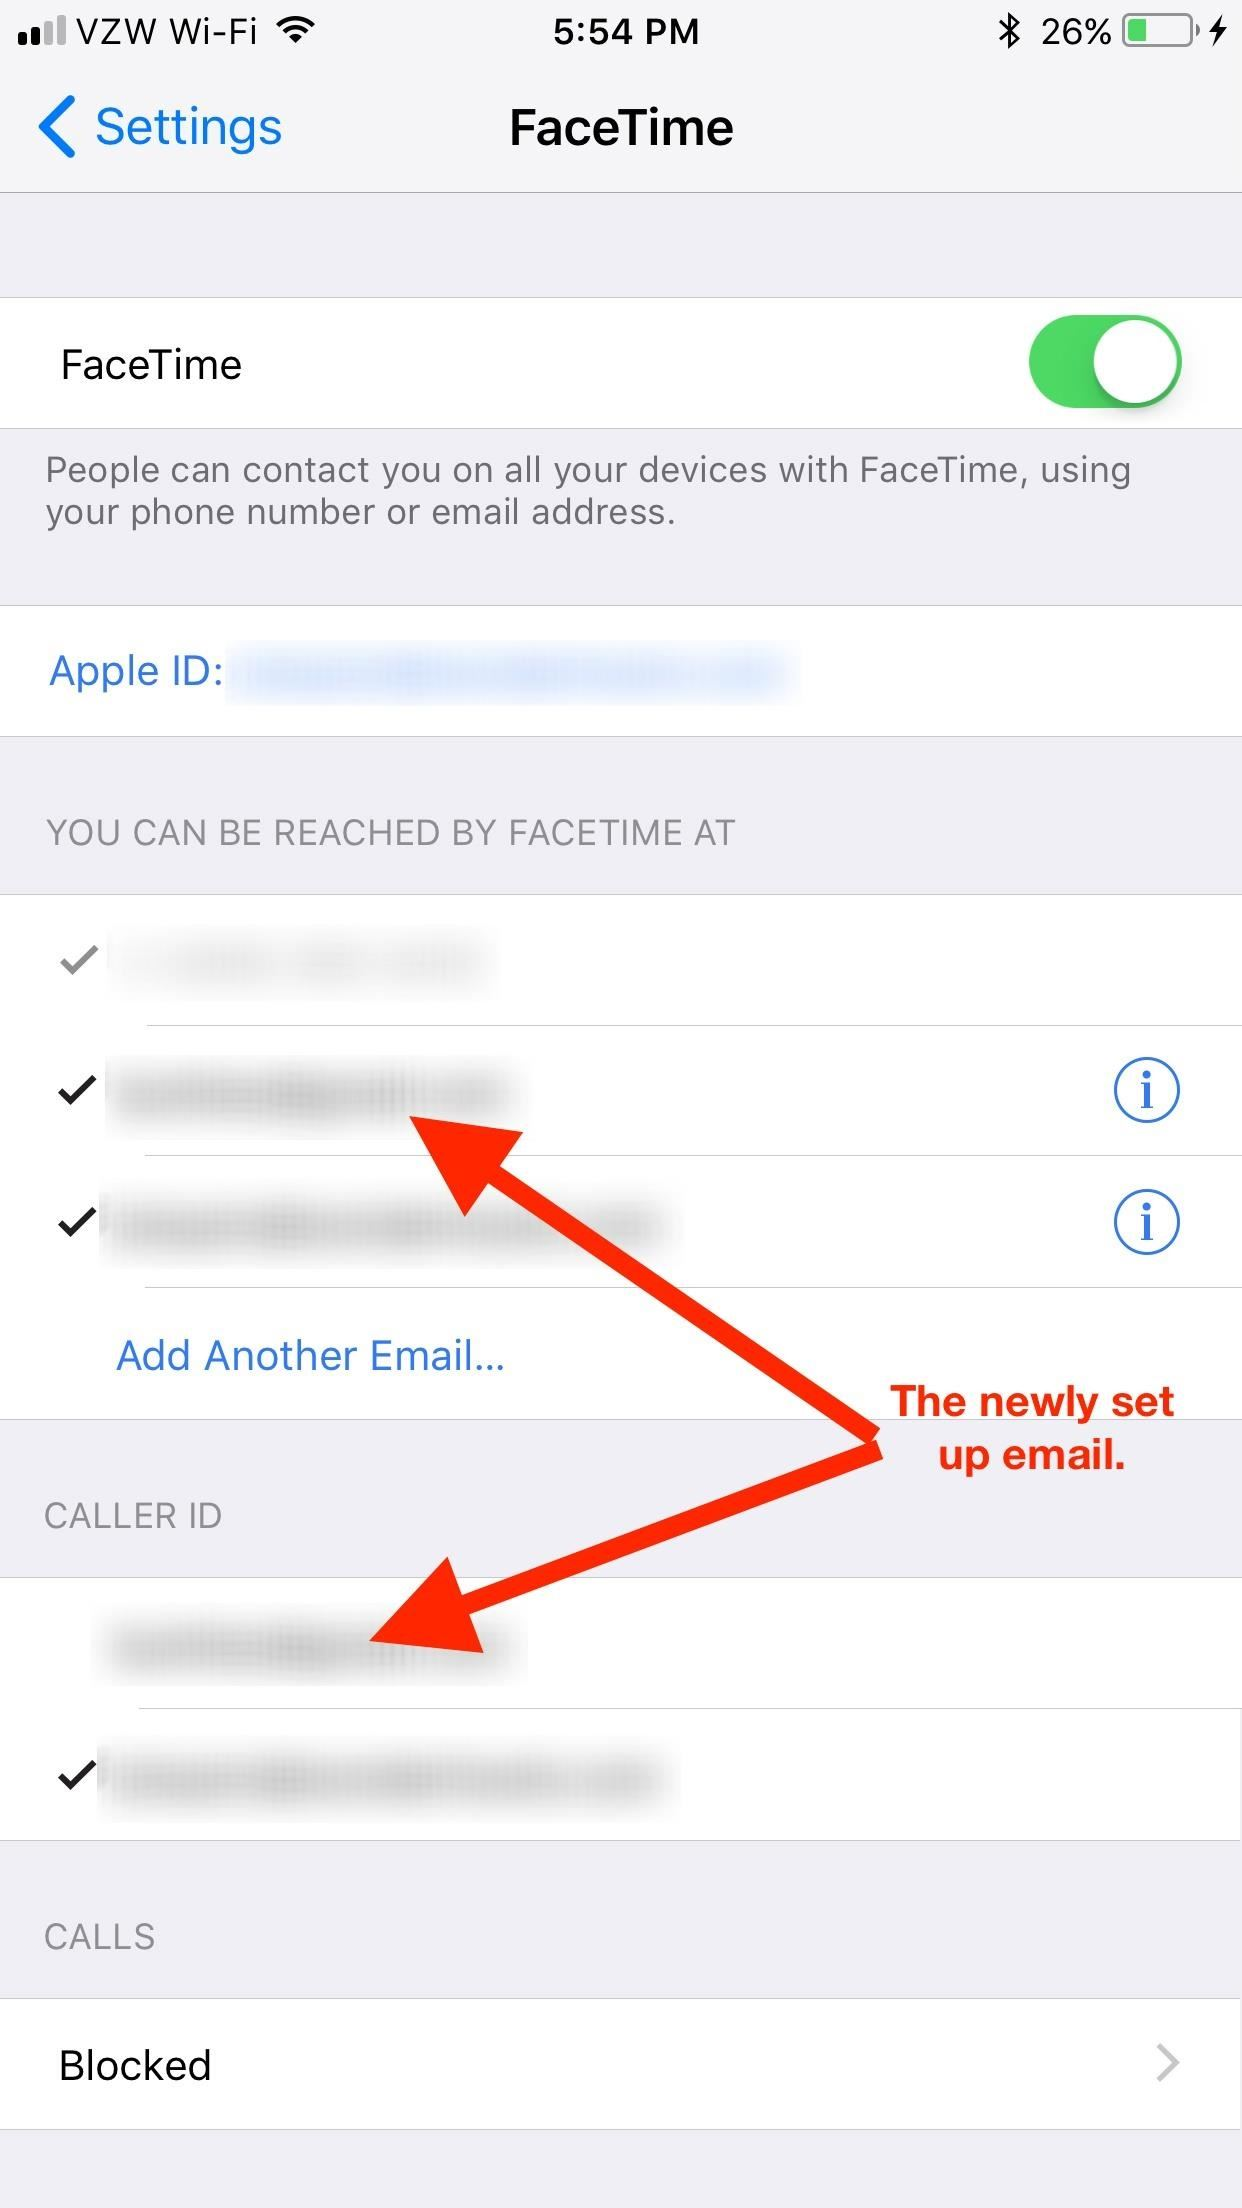 FaceTime 101: How to Add or Remove Email Addresses to Be Reached At on Your iPhone